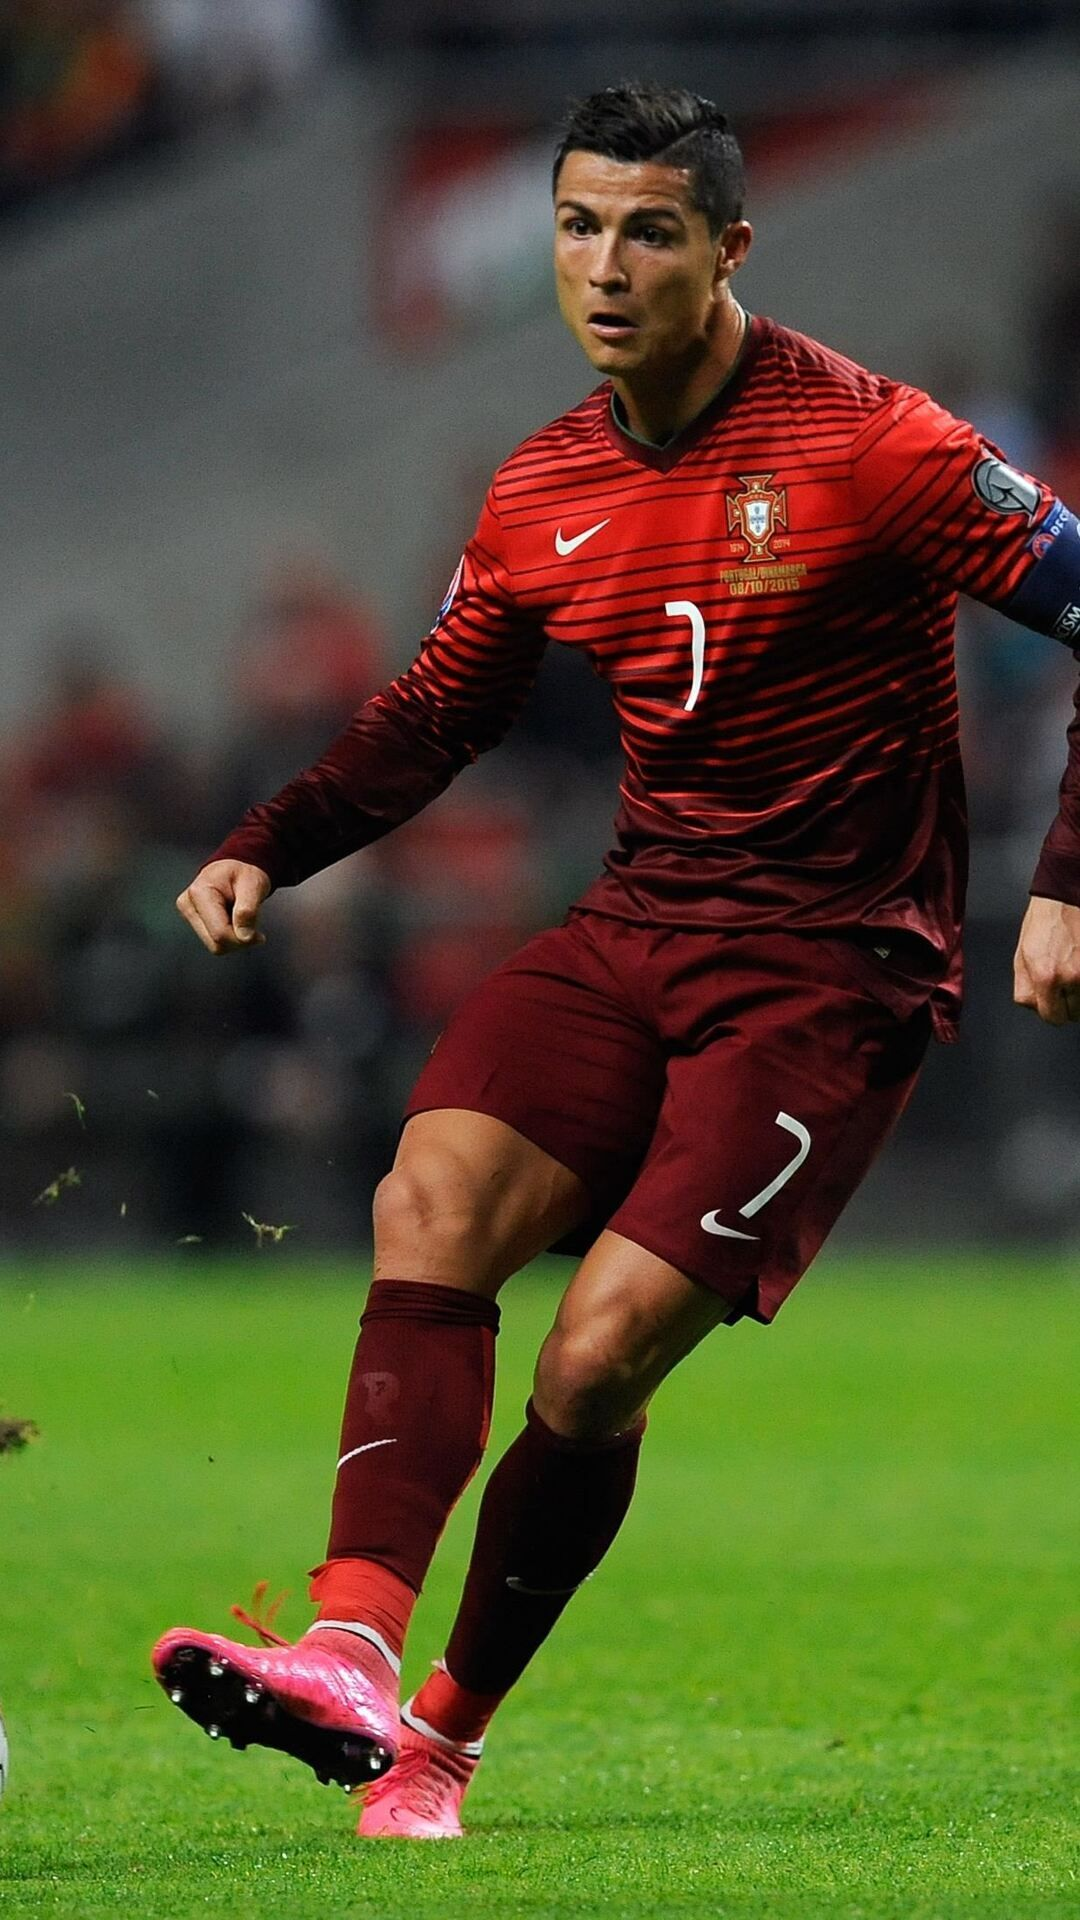 12 Creative Ronaldo Iphone Wallpaper Save In Your PC Now